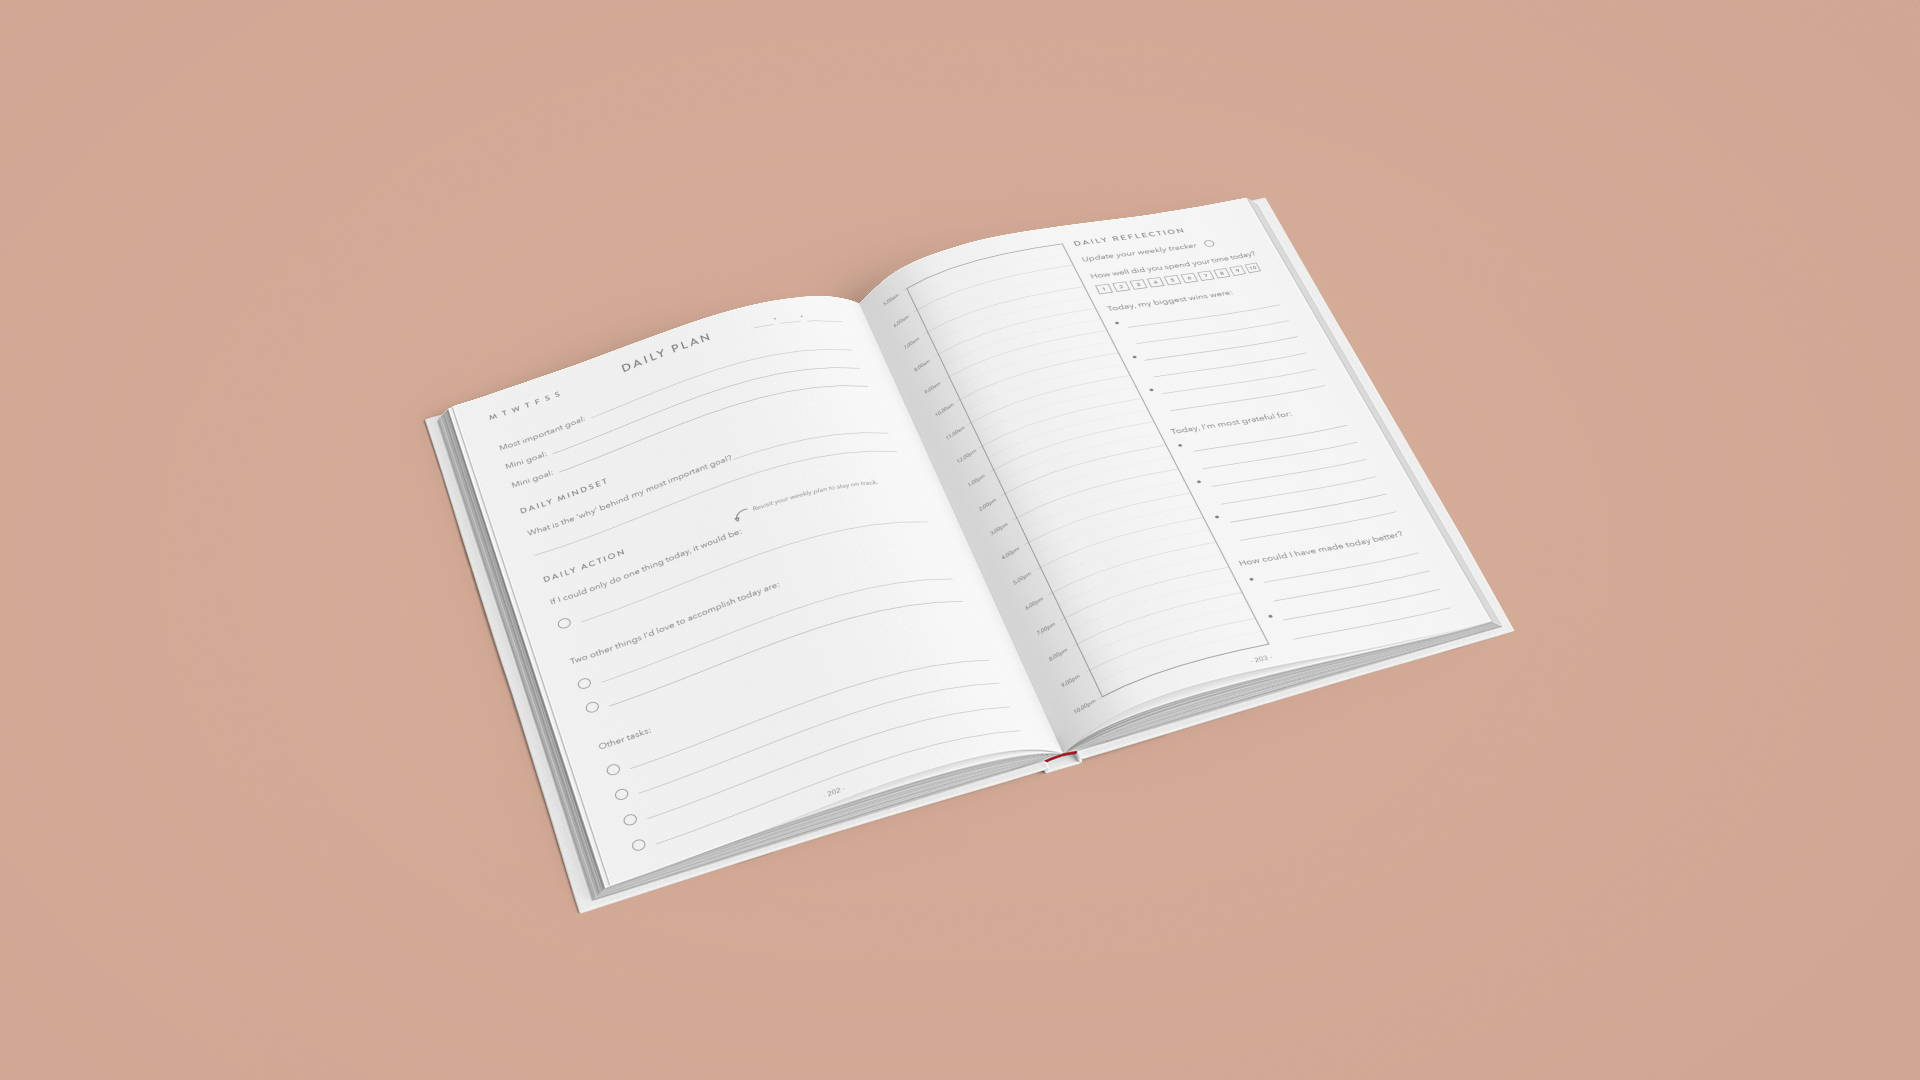 life map daily planner for productivity and goal setting